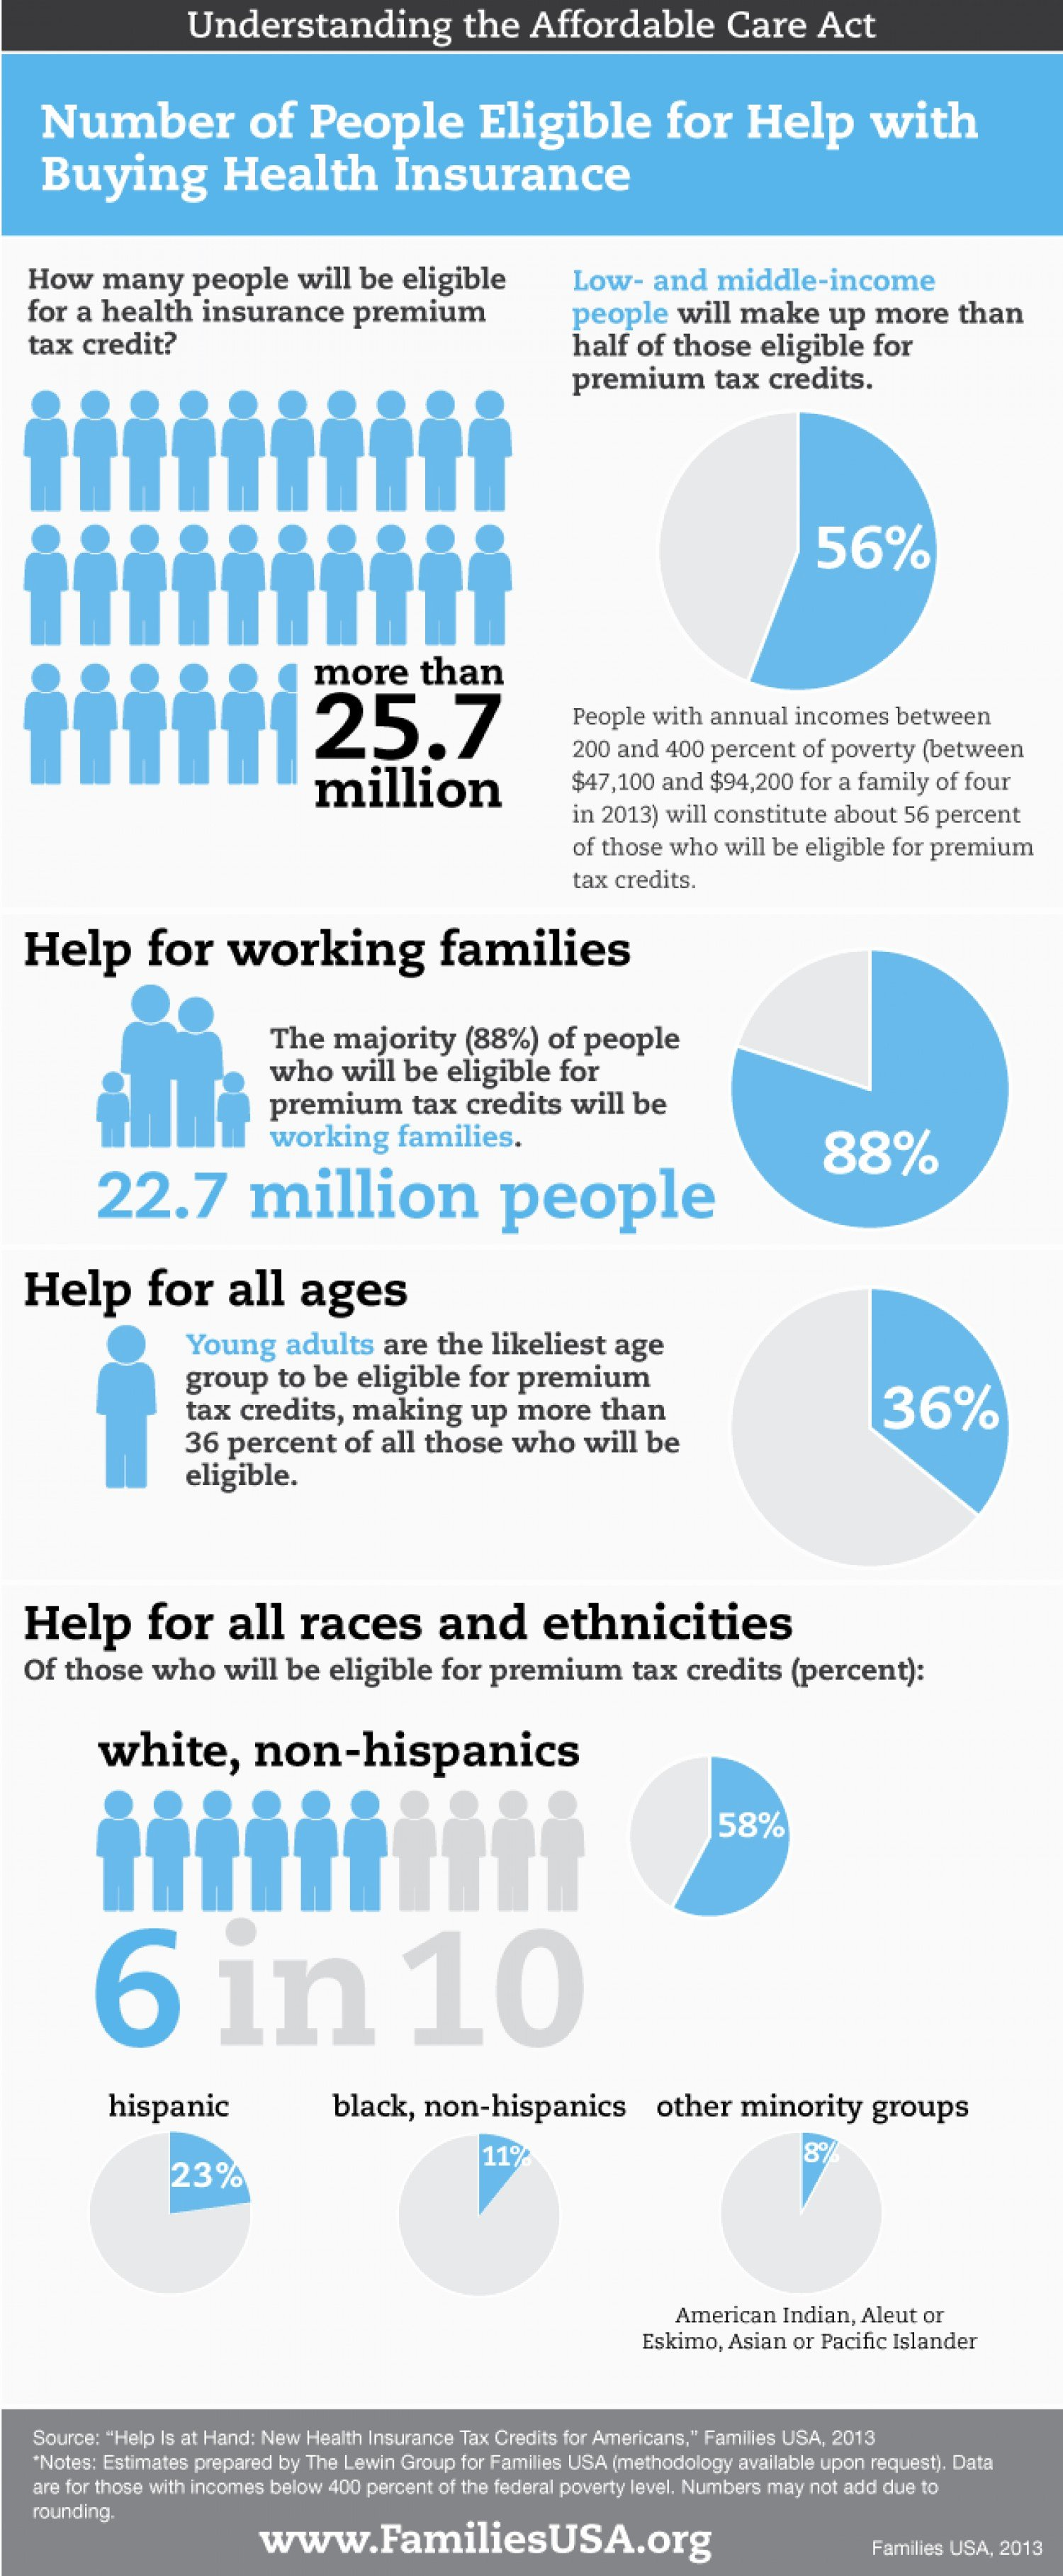 Affordable Care Act Worksheet Elegant Number Of People Eligible for Help with Buying Health